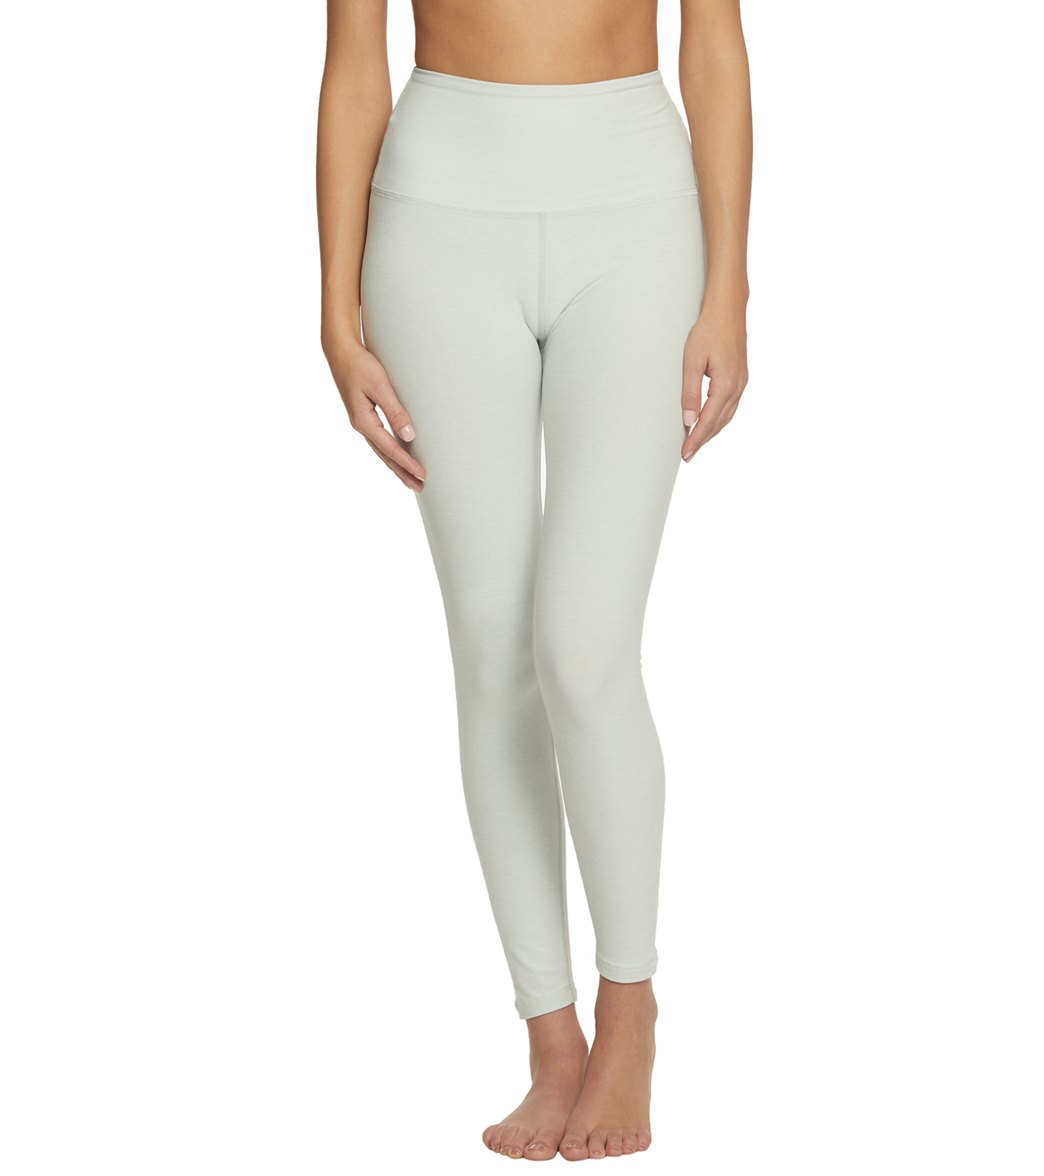 7680e5cd9f Beyond Yoga Spacedye High Waisted Caught In The Midi 7/8 Yoga Leggings